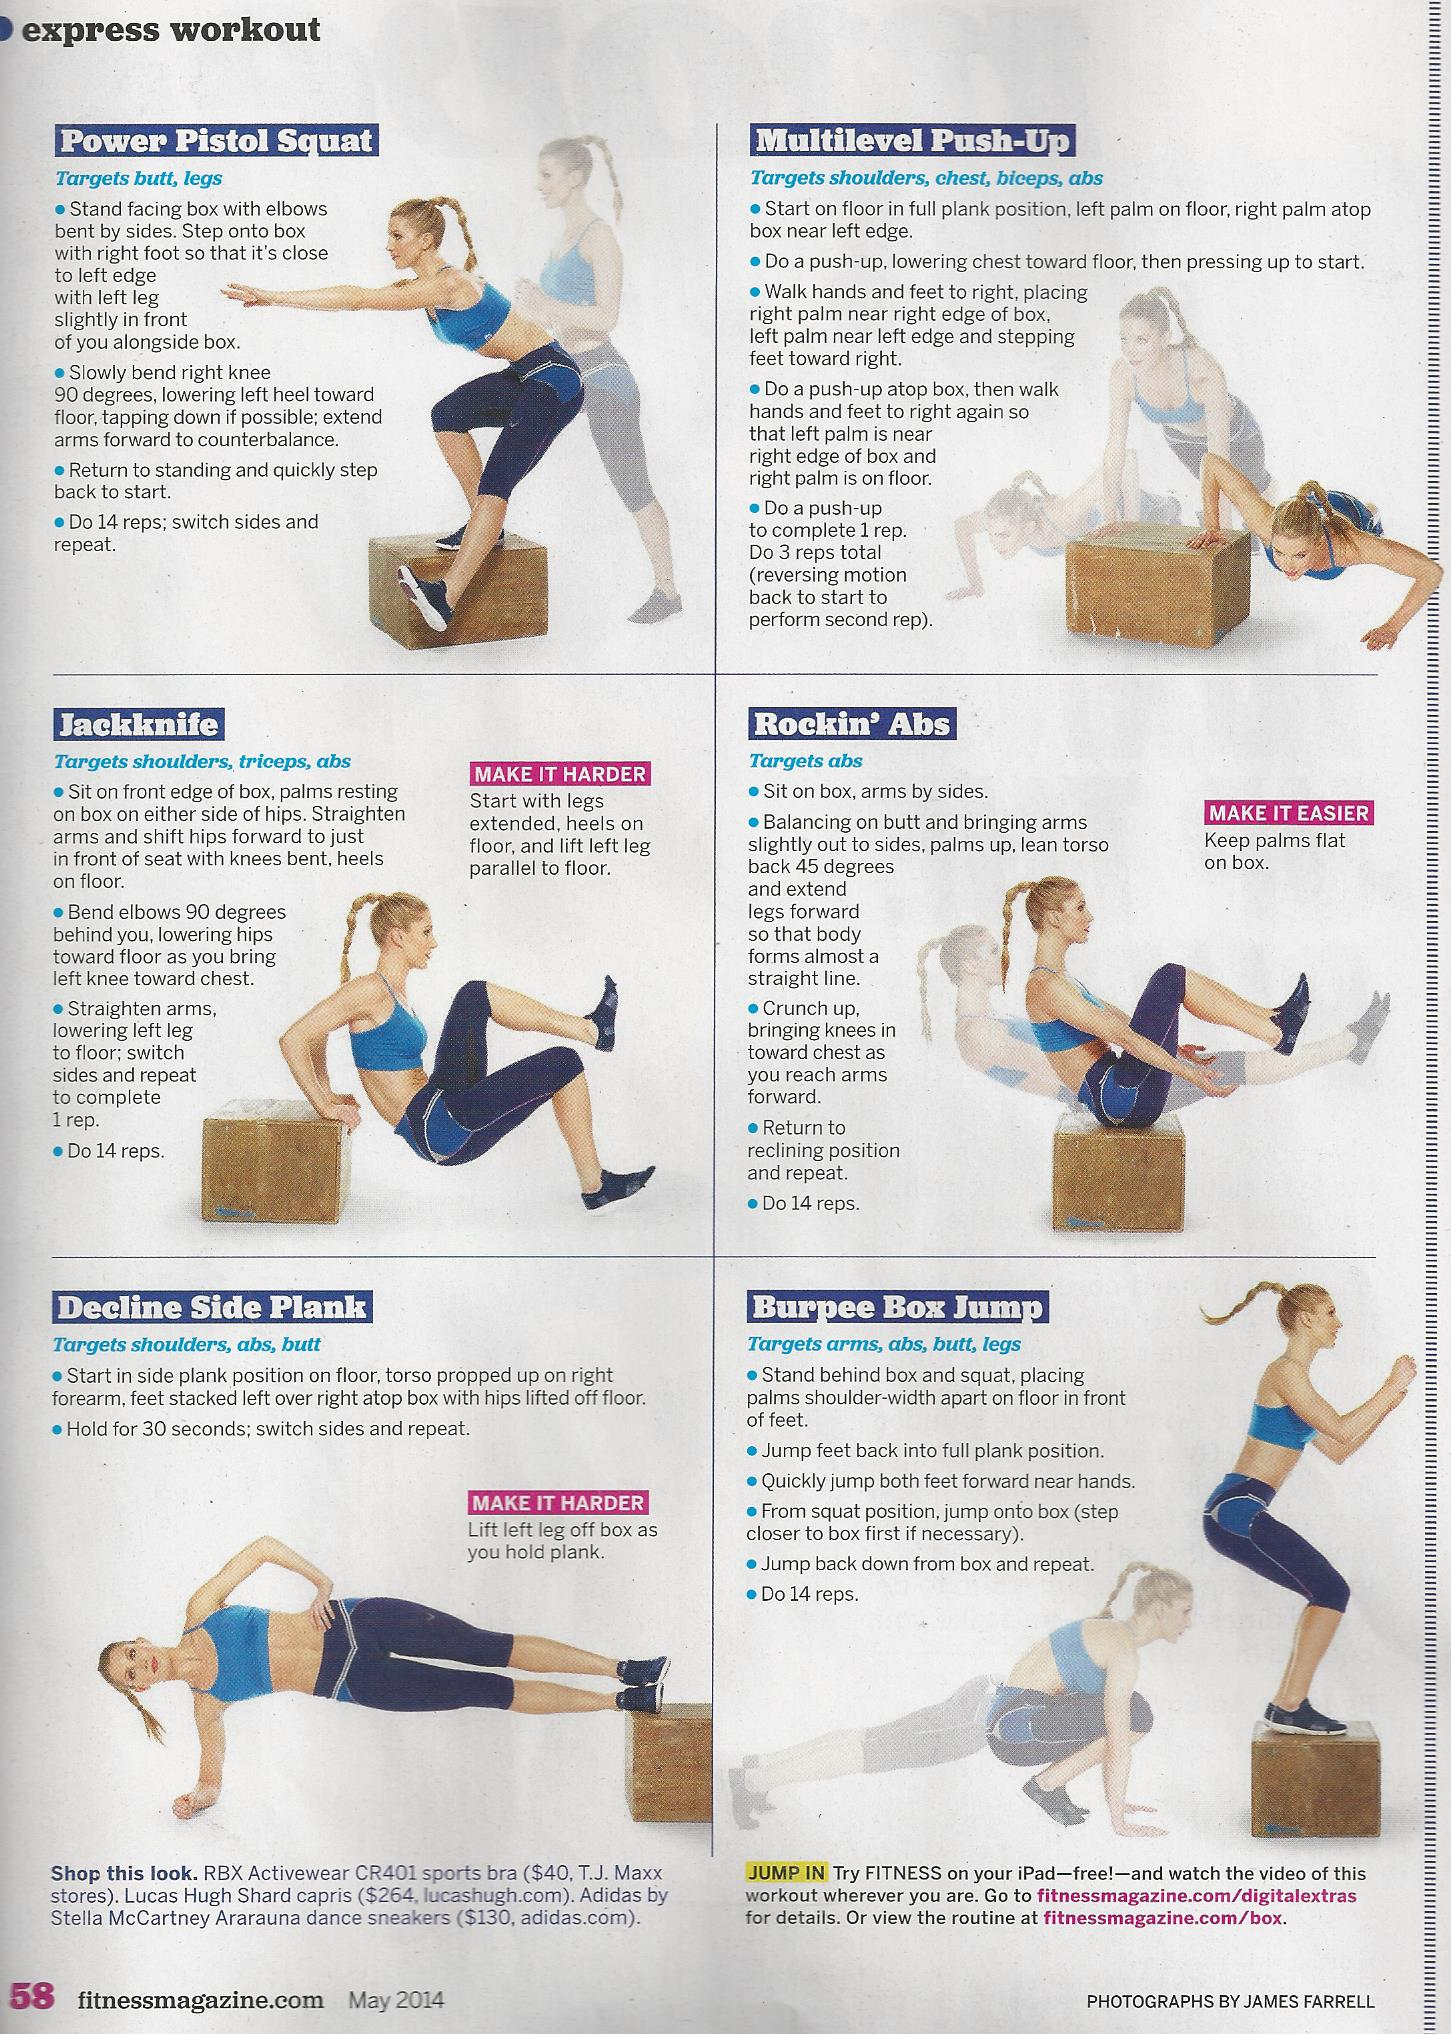 Fitness Magazine Archives Brooklyn Fit Chick On Pinterest Workout Circuit Workouts And Strength Express 001